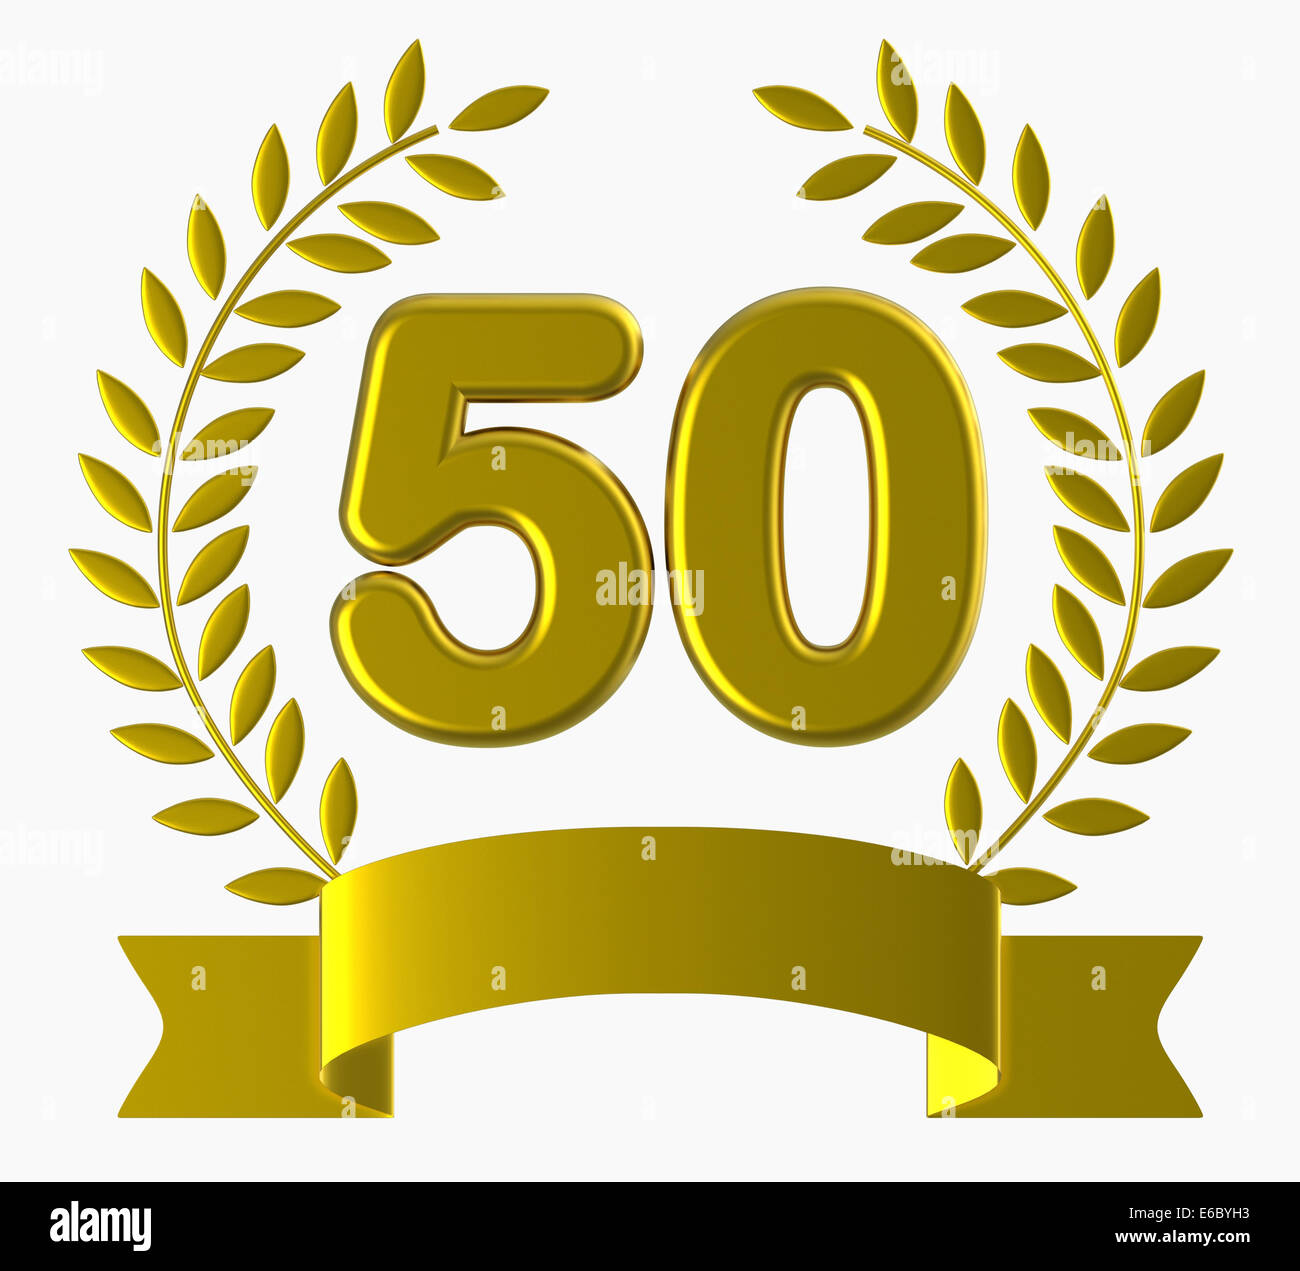 Happy 50th Birthday Cut Out Stock Images & Pictures